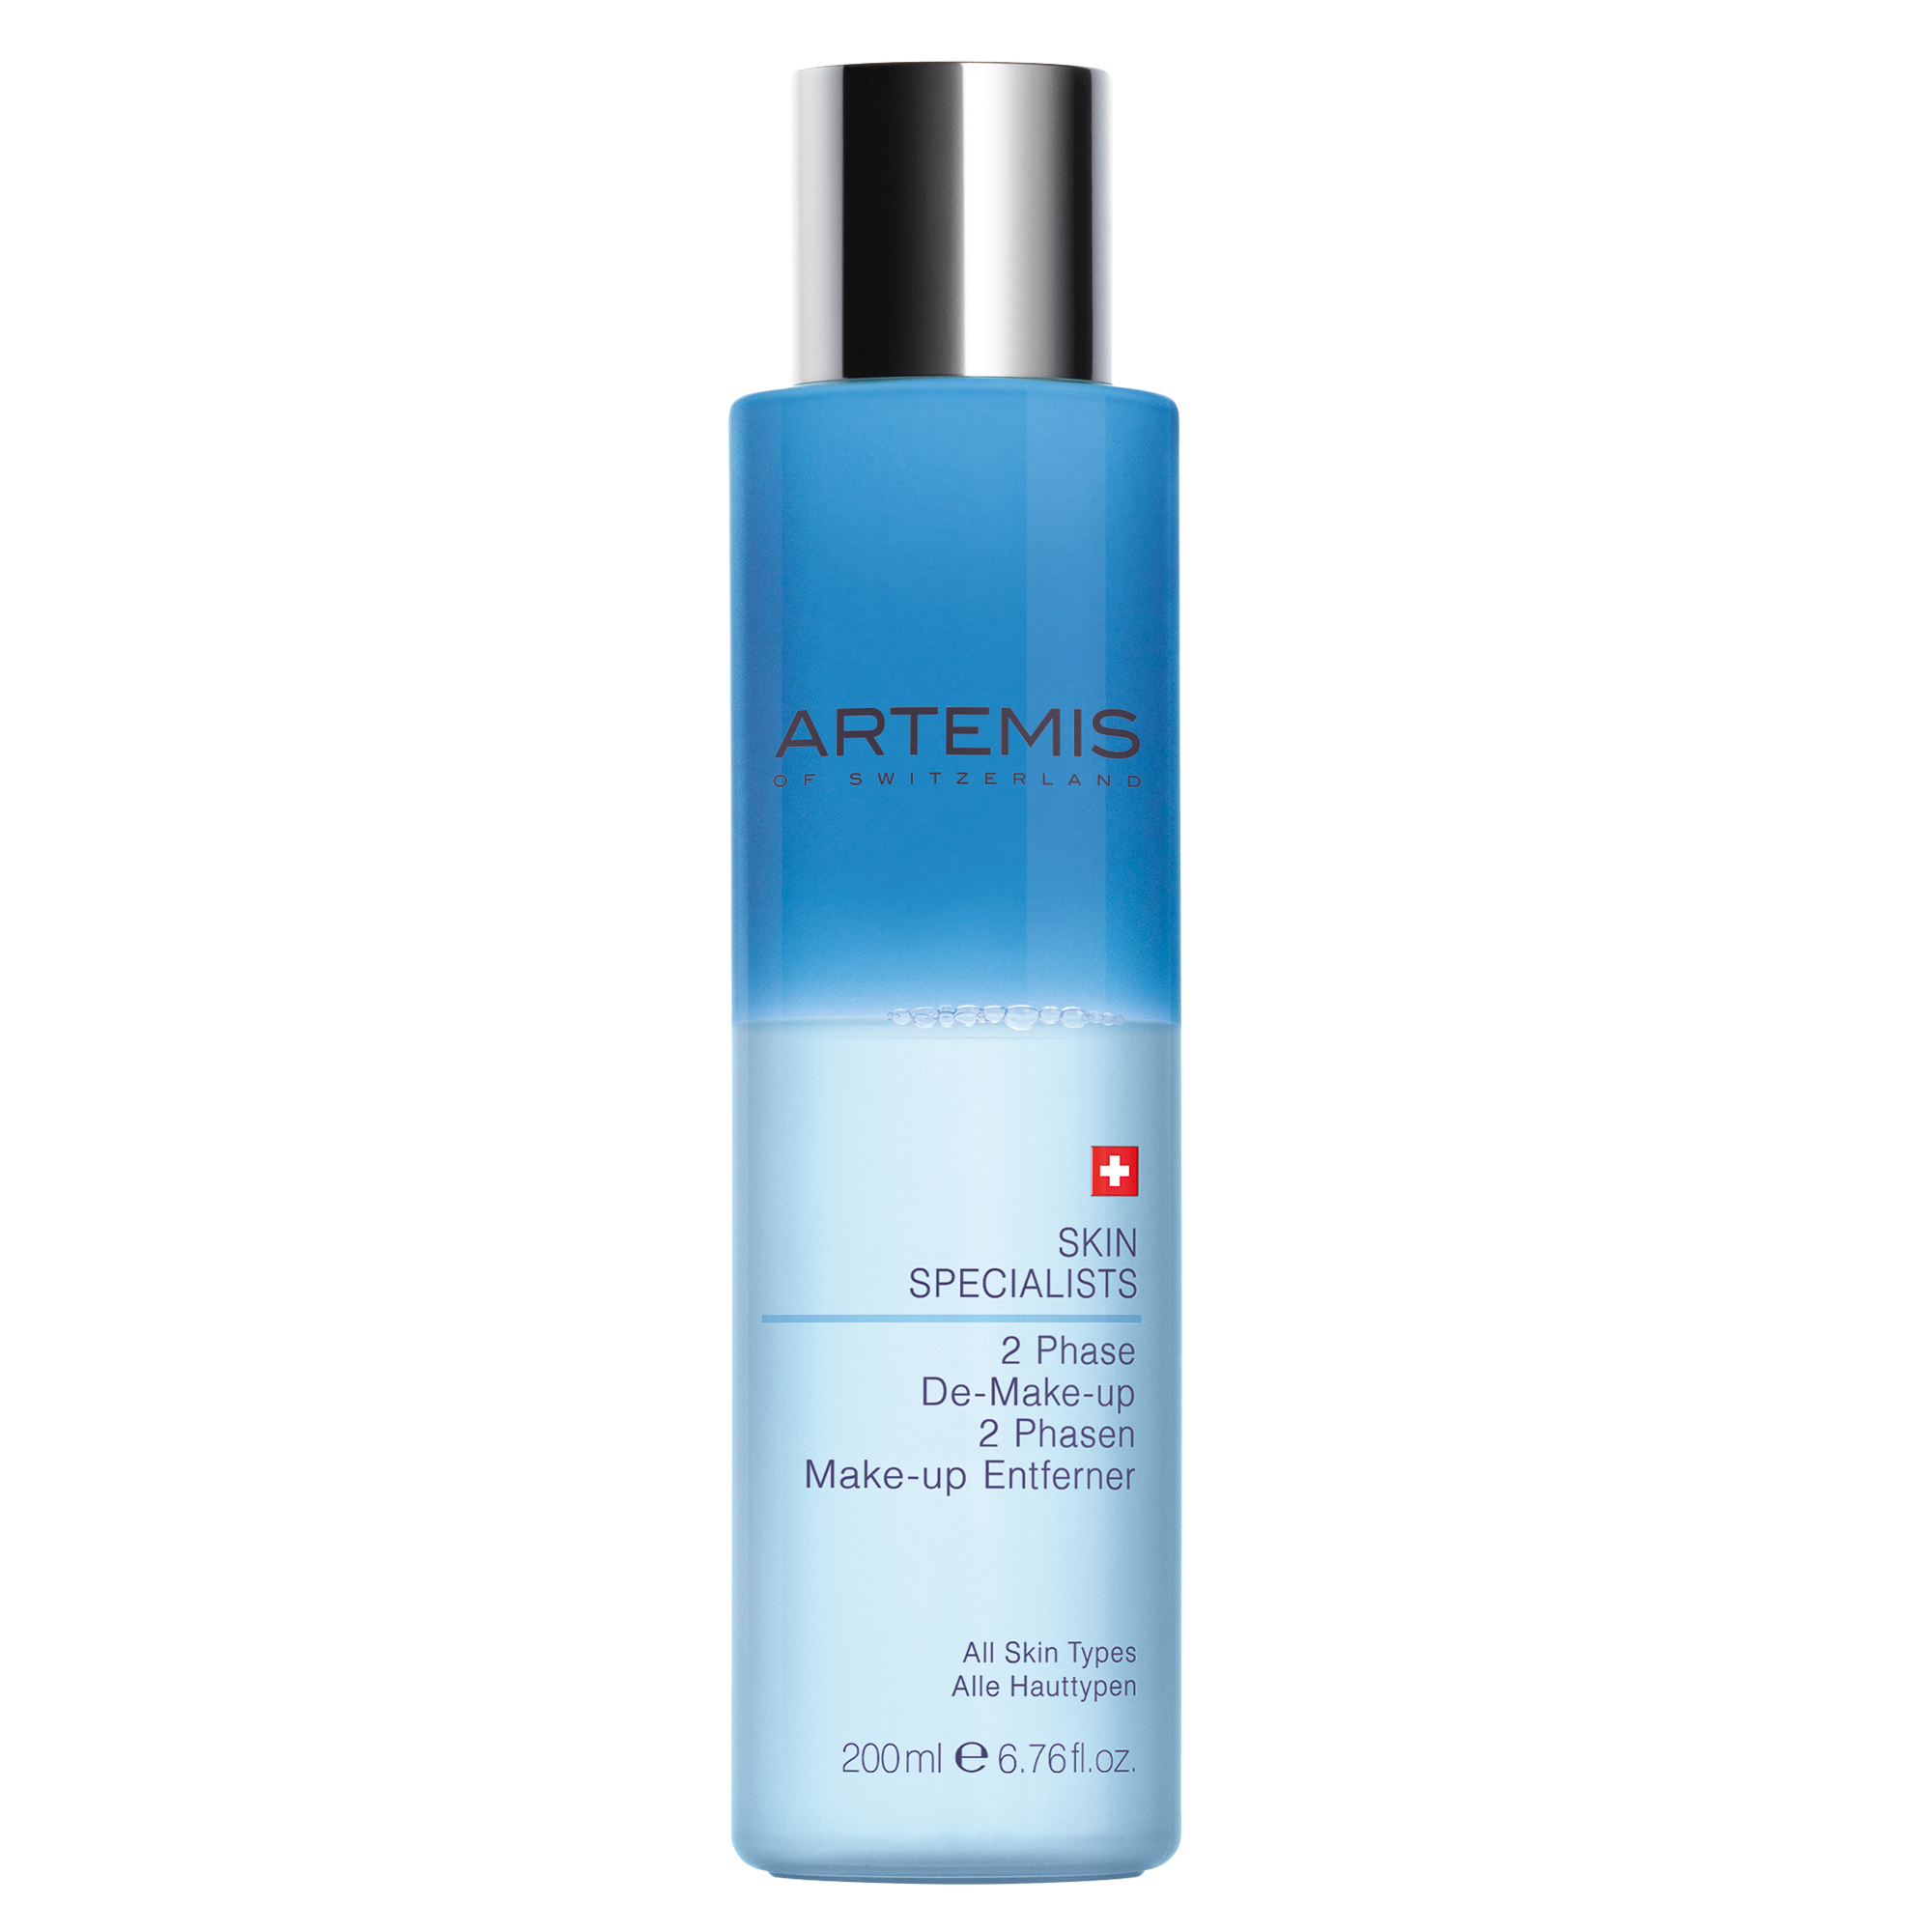 Artemis Skin Specialists 2 Phase Make-Up Remover 200ml